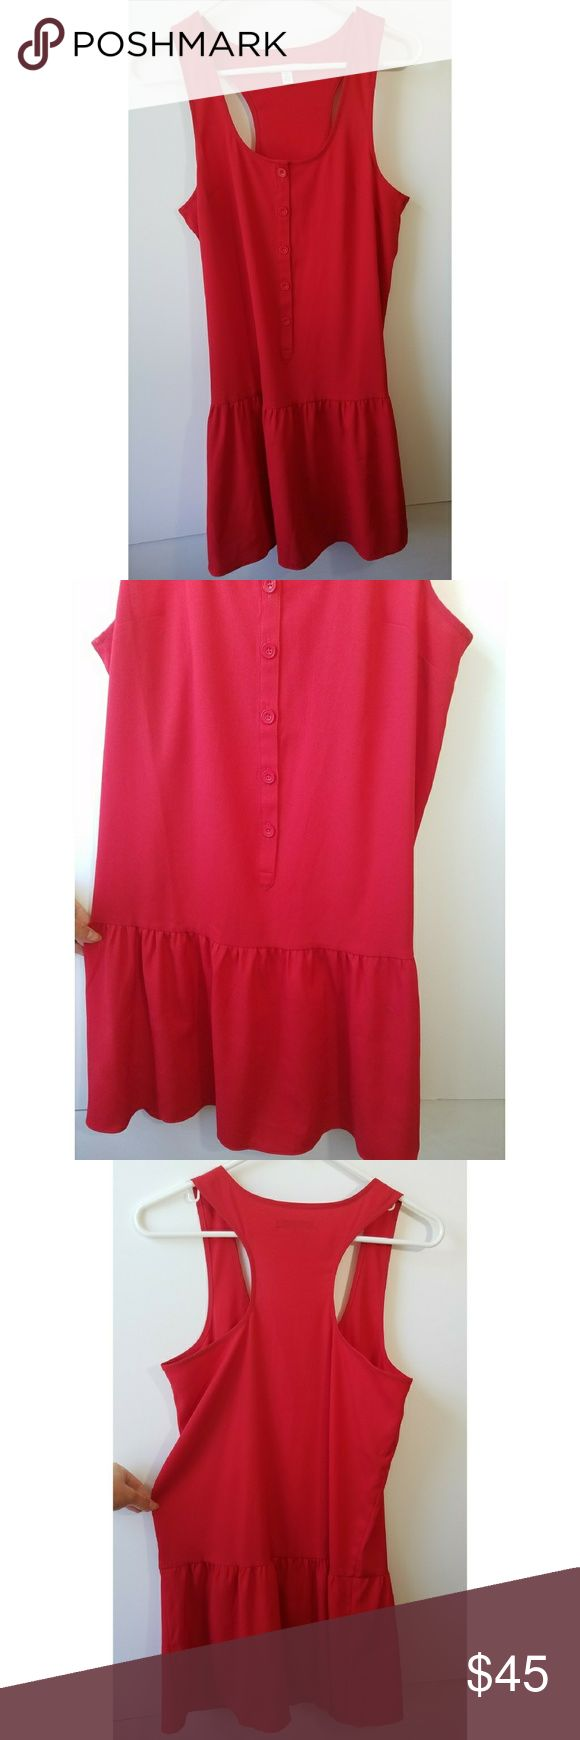 American Eagle Outfitters Vibrant Red Dress * In Brand New Condition Without Tags   * Gorgeous Knock-Out Red Coloring With Button Down Front Details And Subtle Flare At Bottom American Eagle Outfitters Dresses